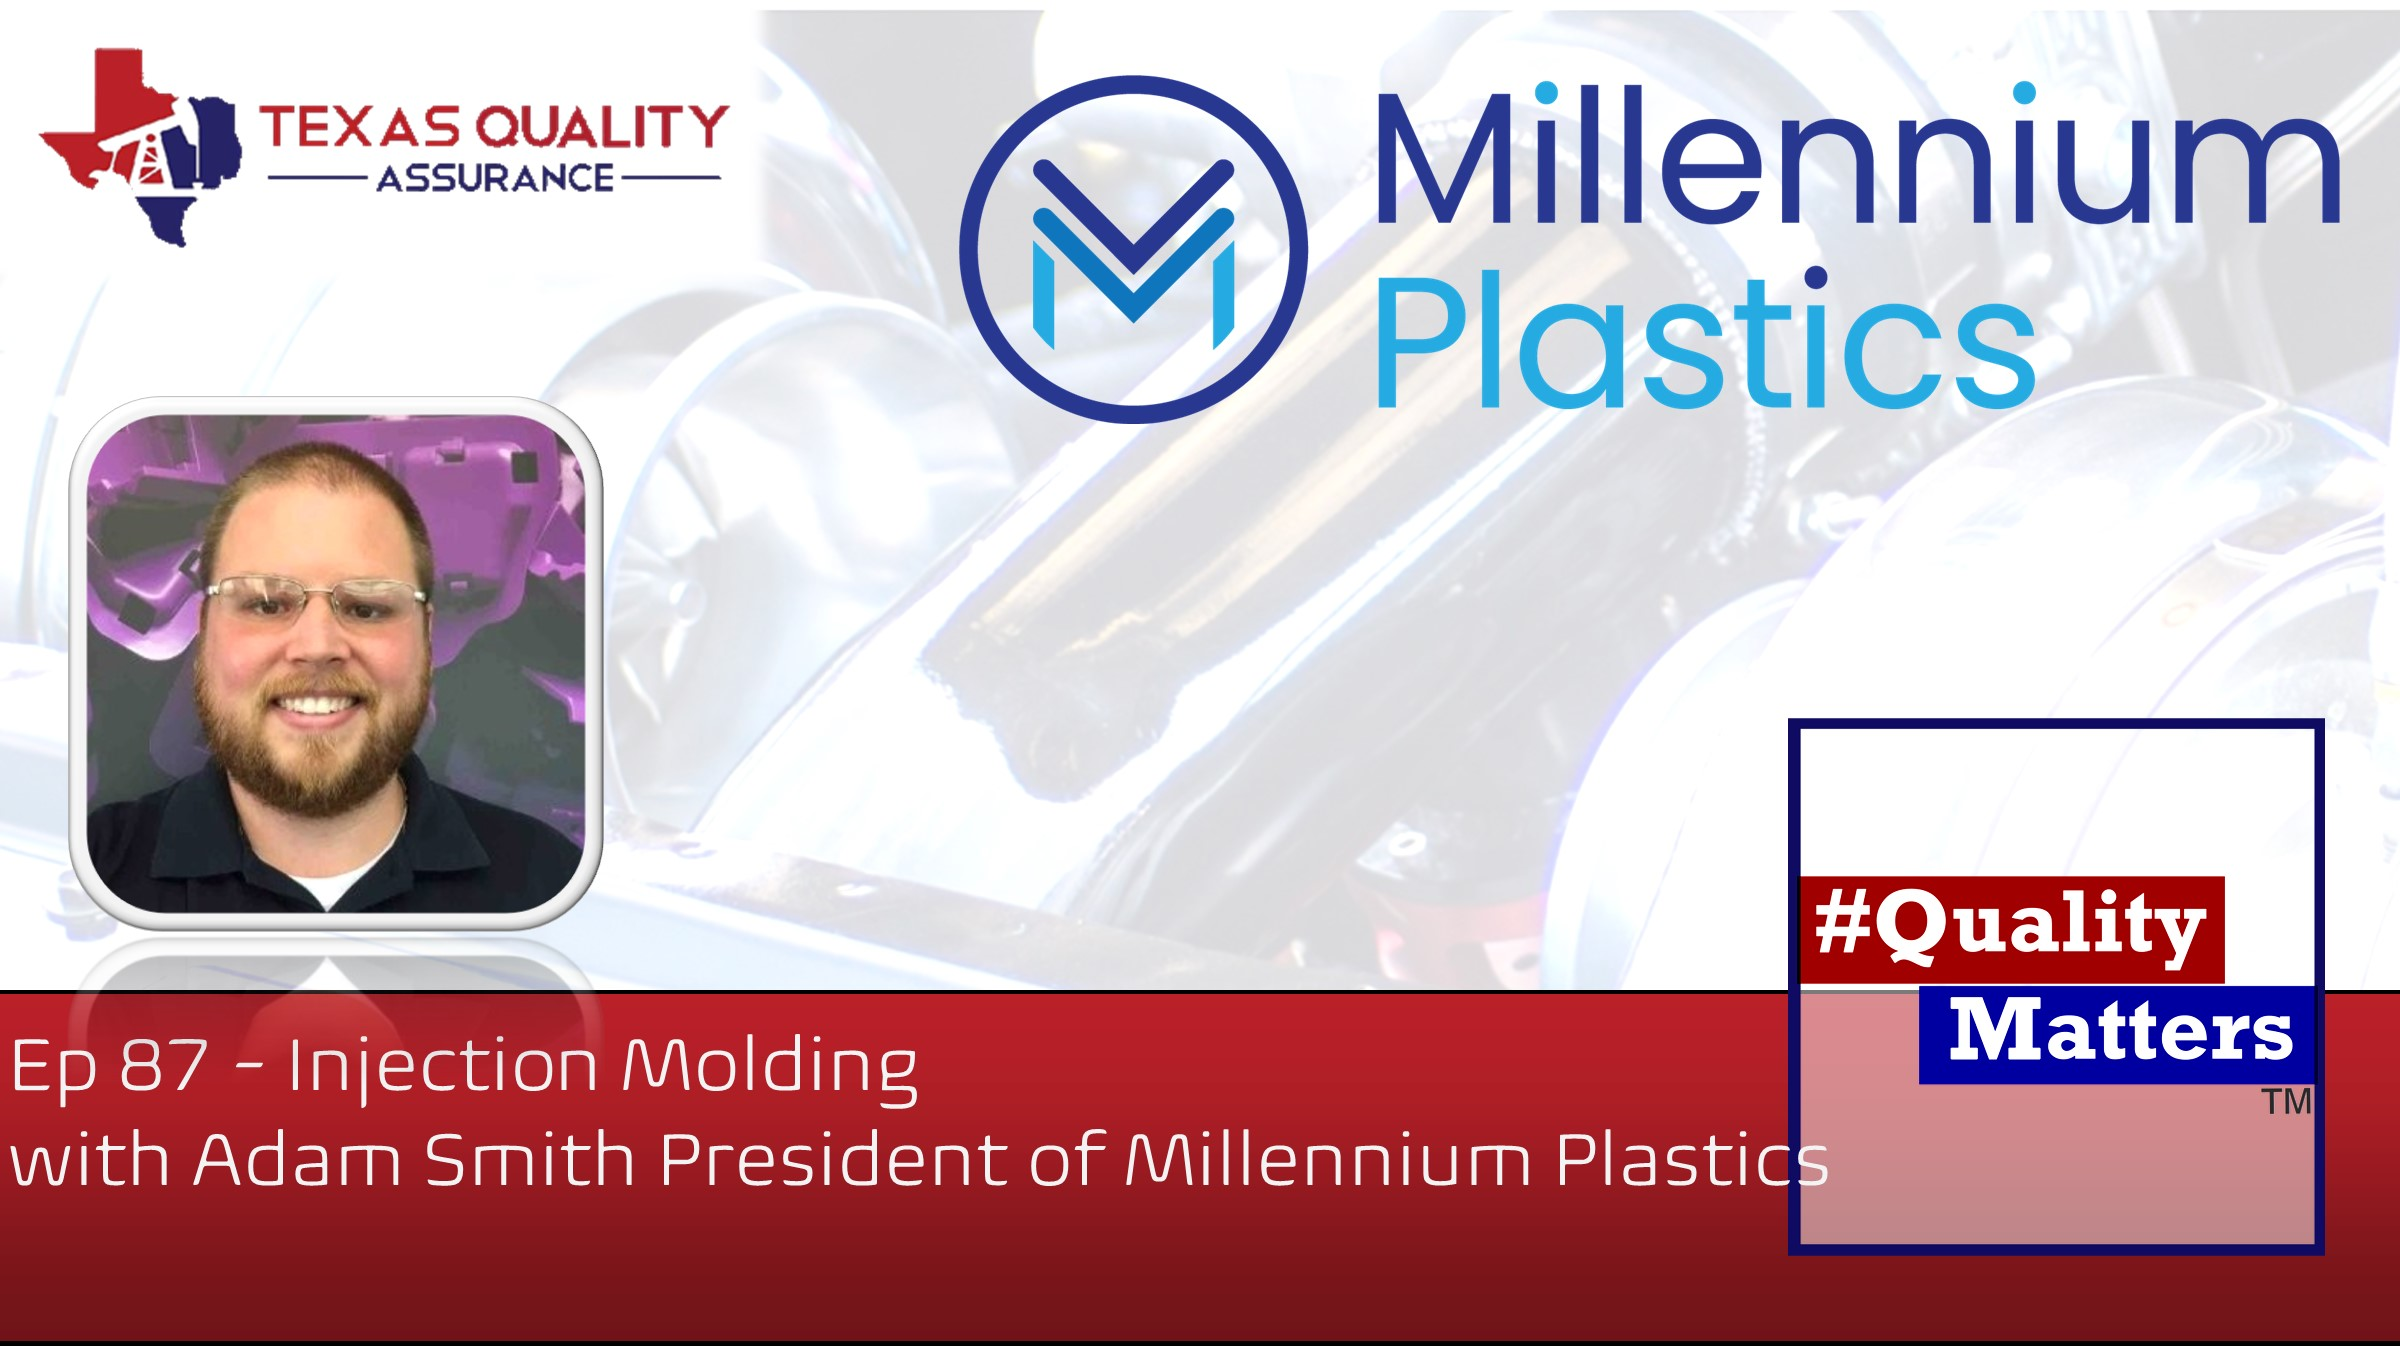 Ep 87 – Injection Molding with Adam Smith President of Millennium Plastics